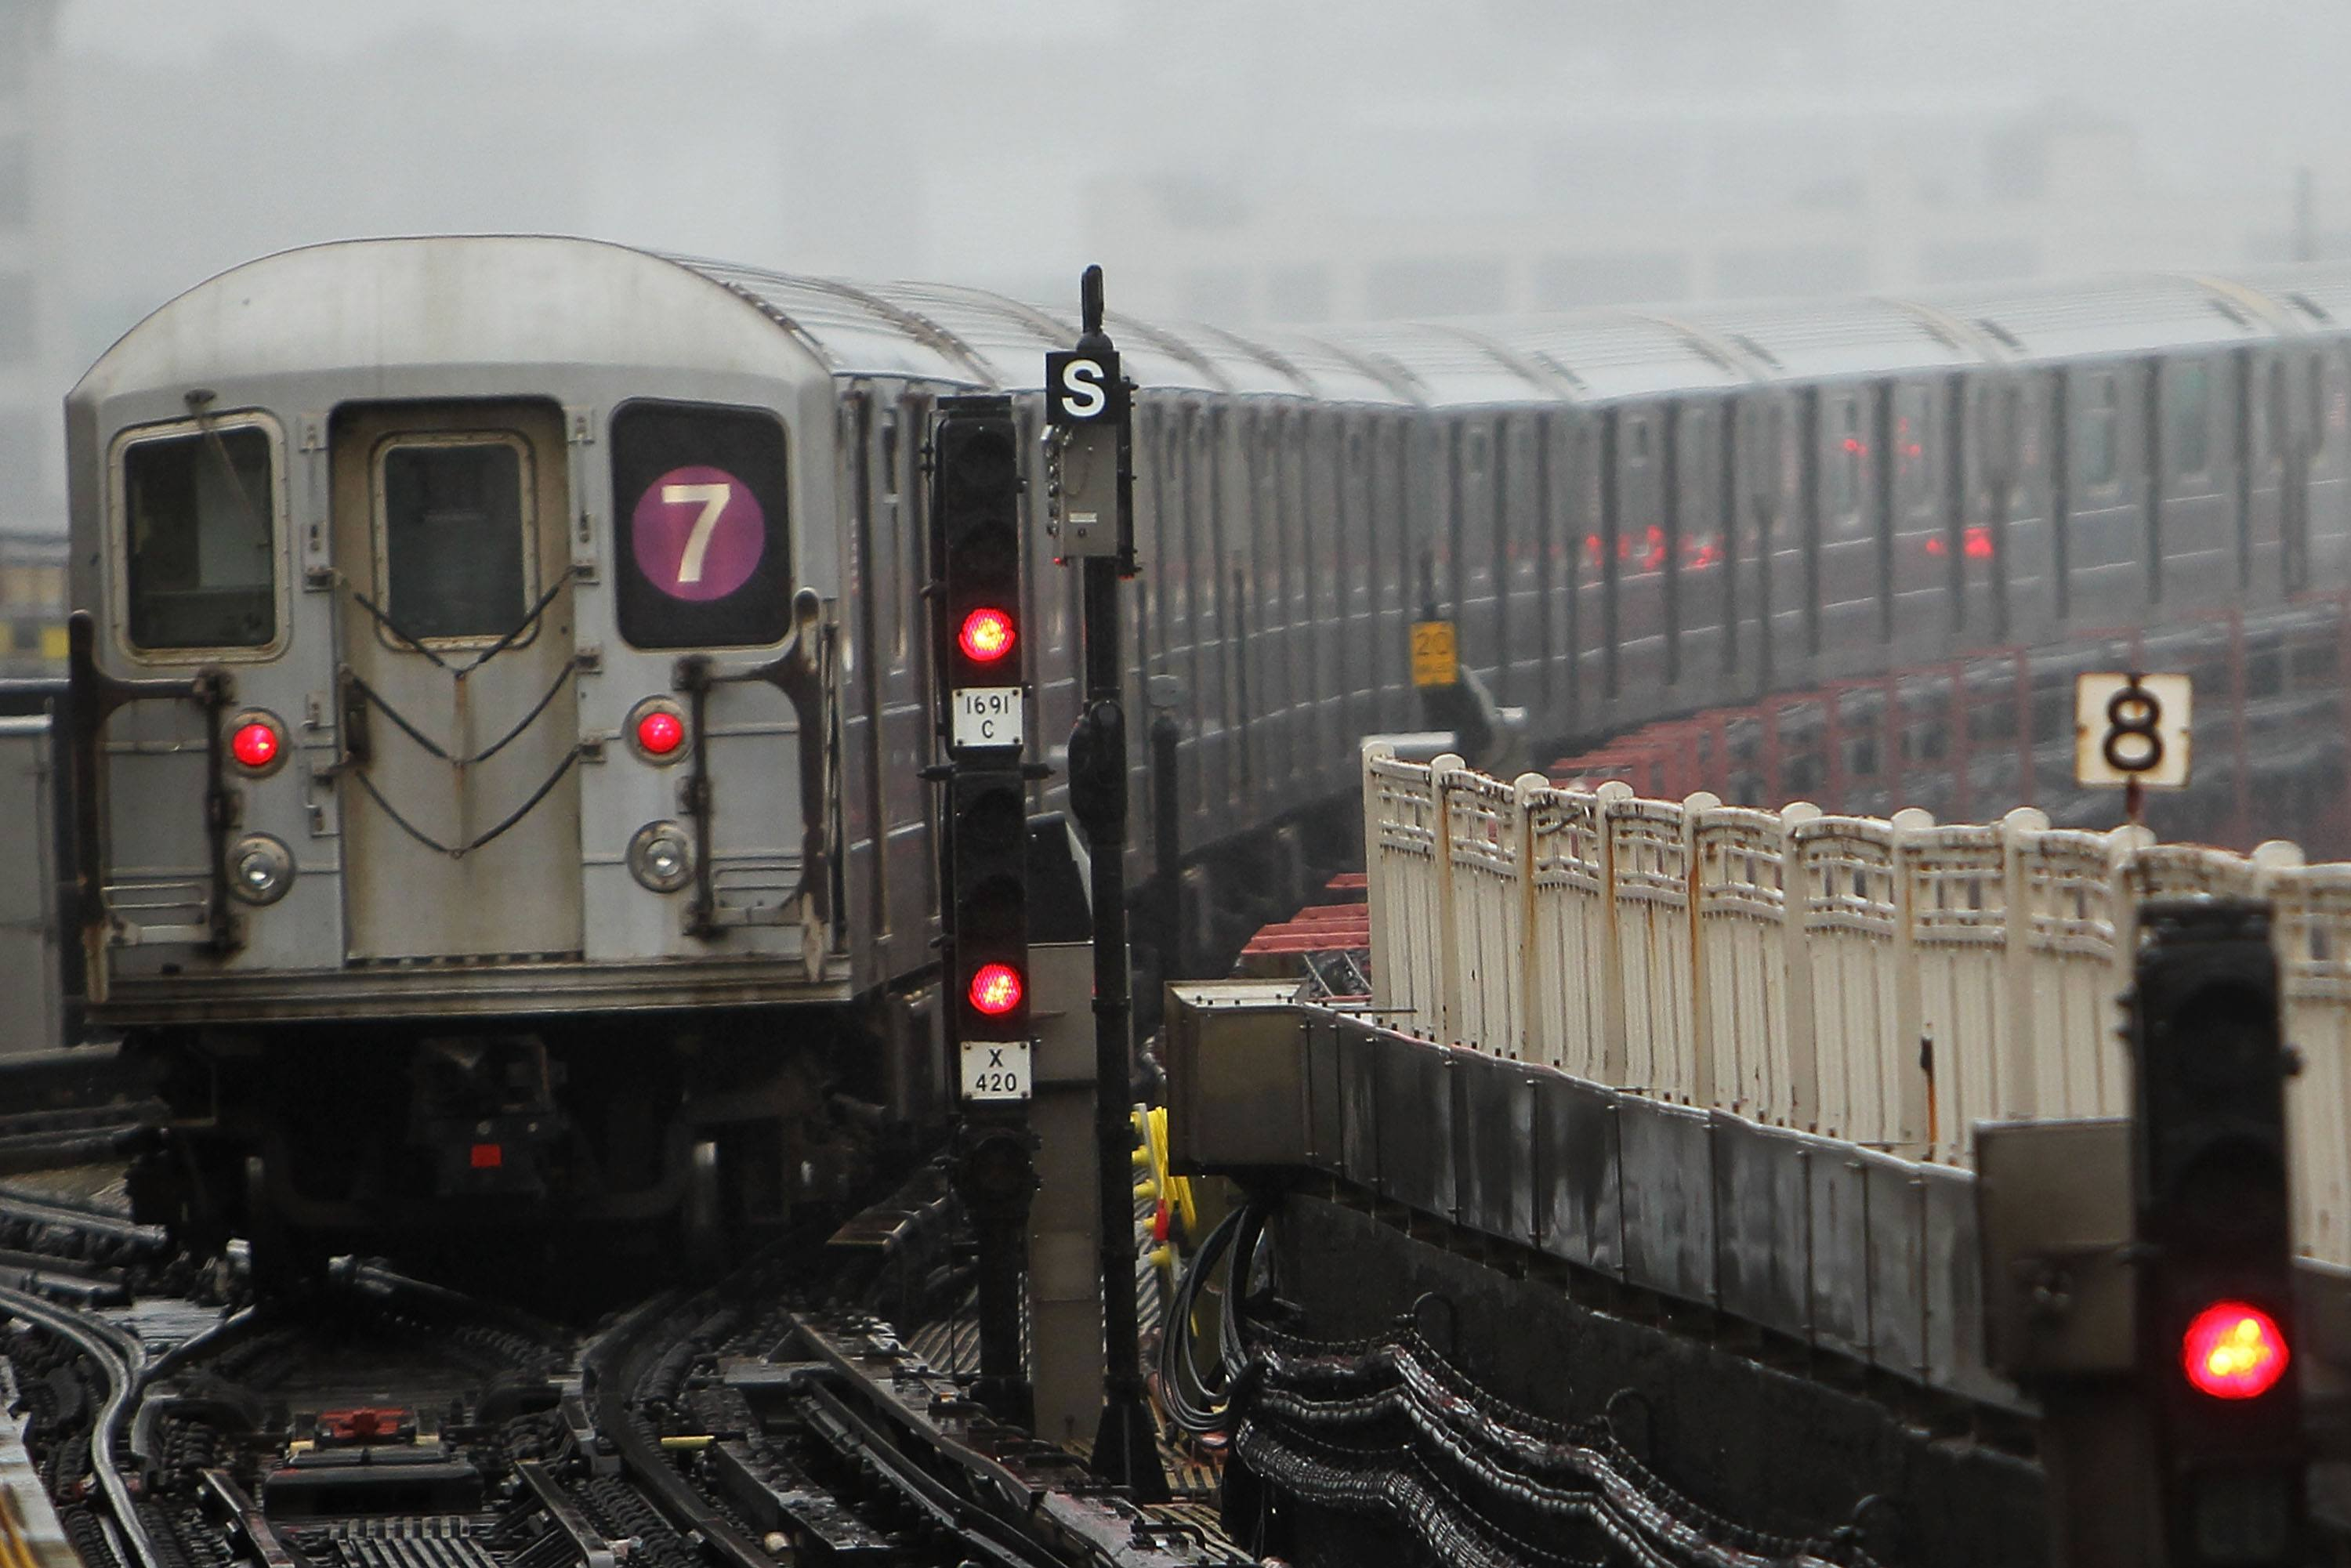 A New York City Subway train pulls away from a station